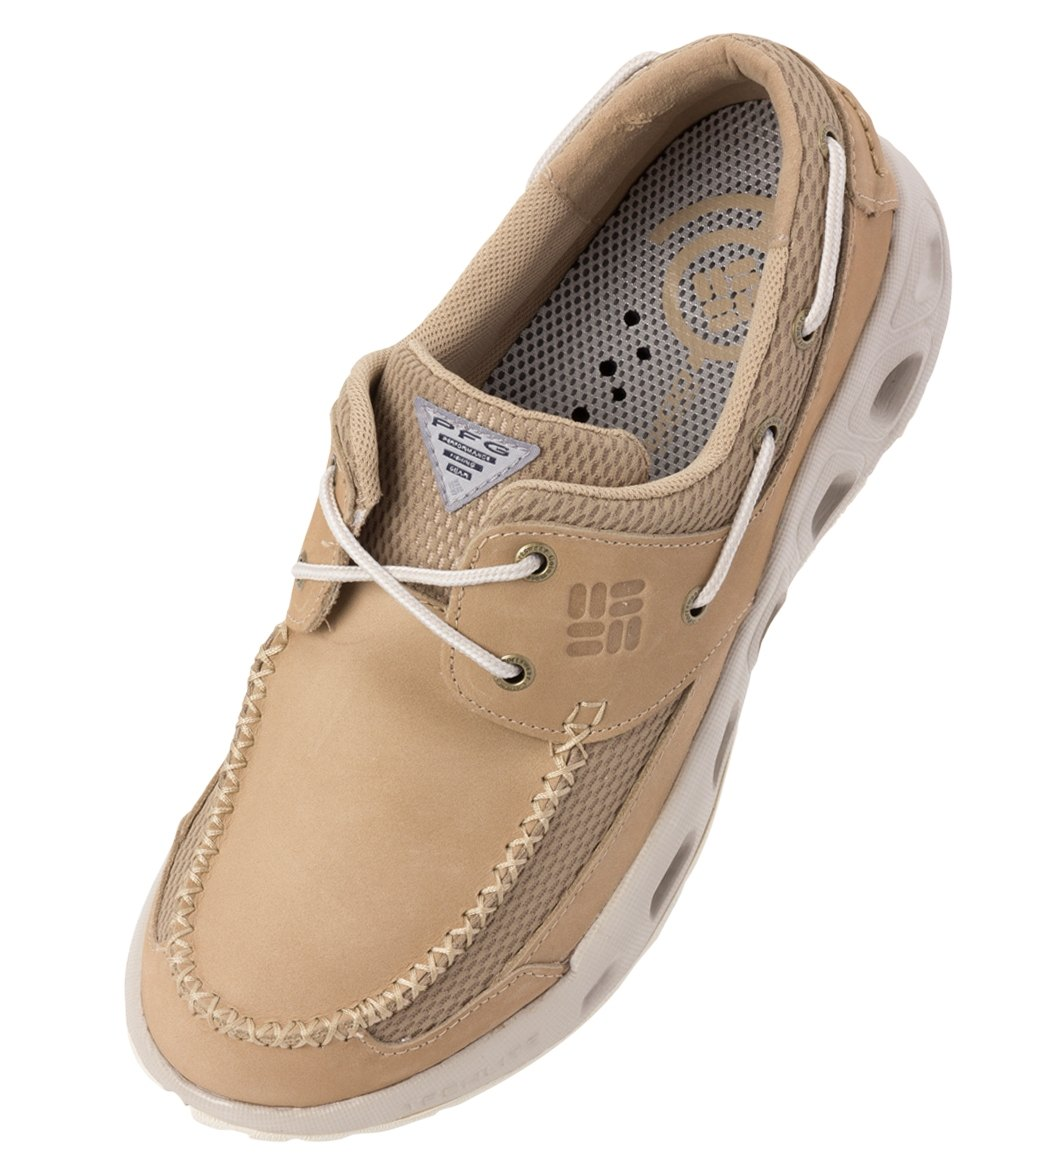 10dfeabe3210 Columbia Men s Boatdrainer II PFG Water Shoes